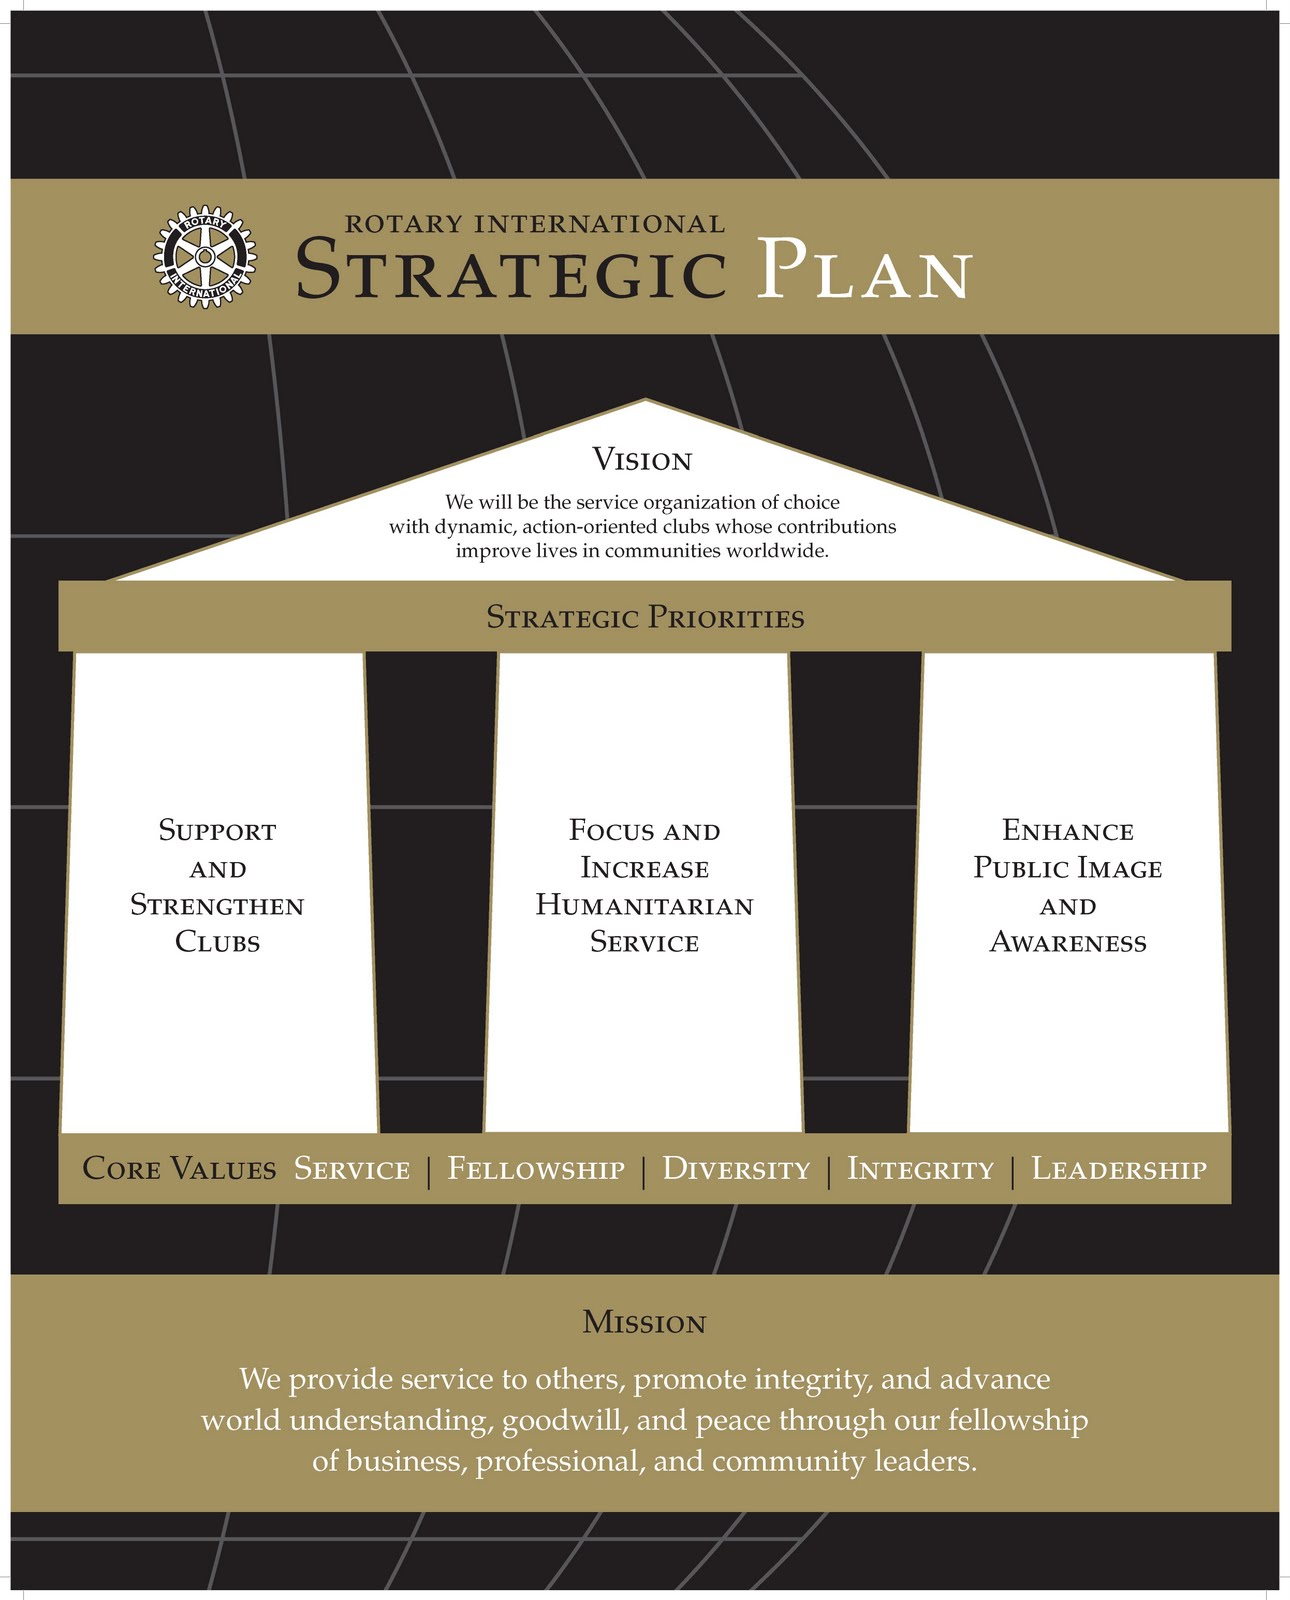 rotary club strategic plan example